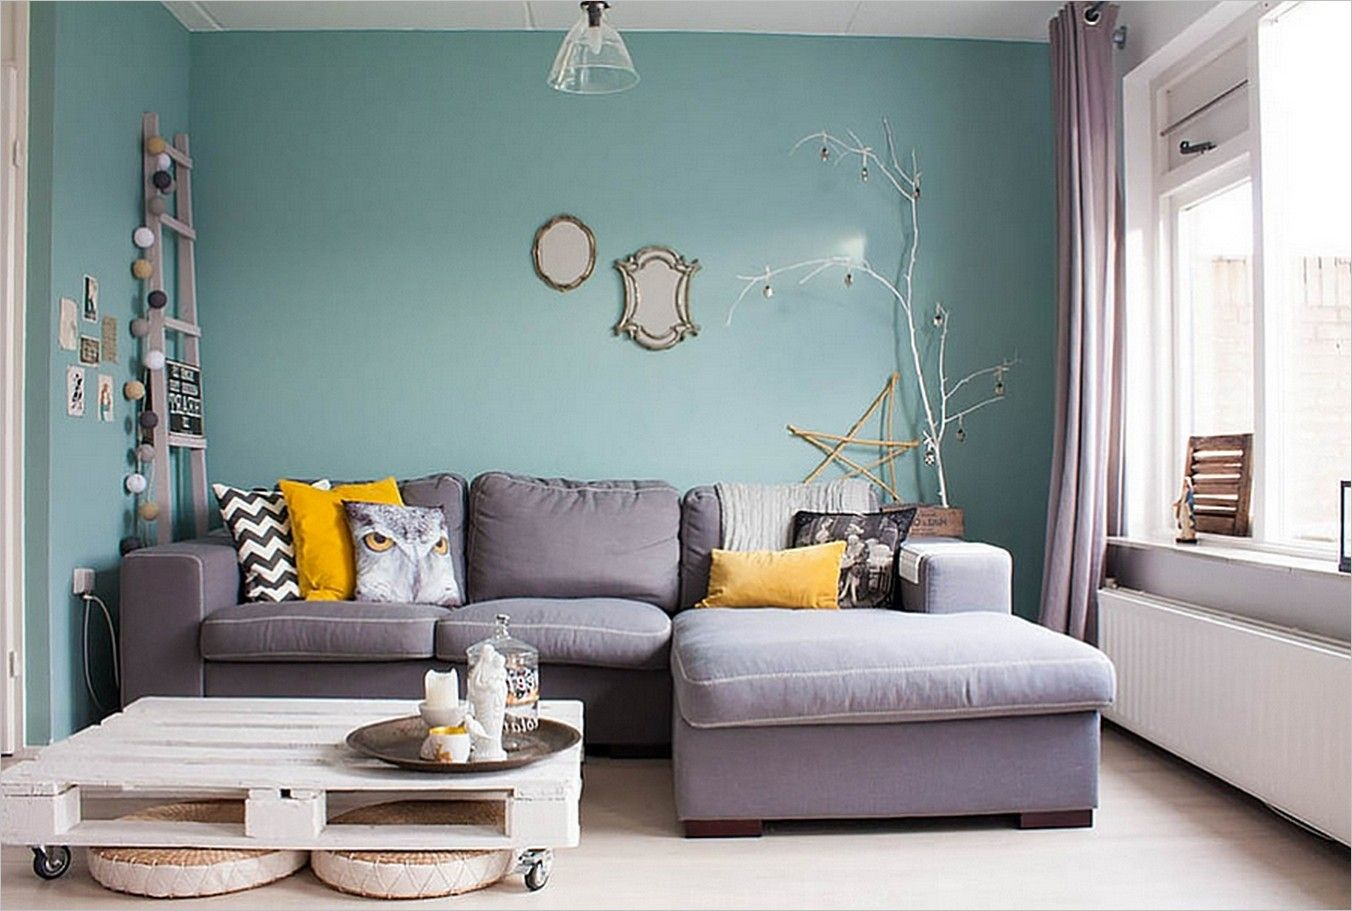 Lovely living room interior desig with blue wall paint Color ideas for a living room